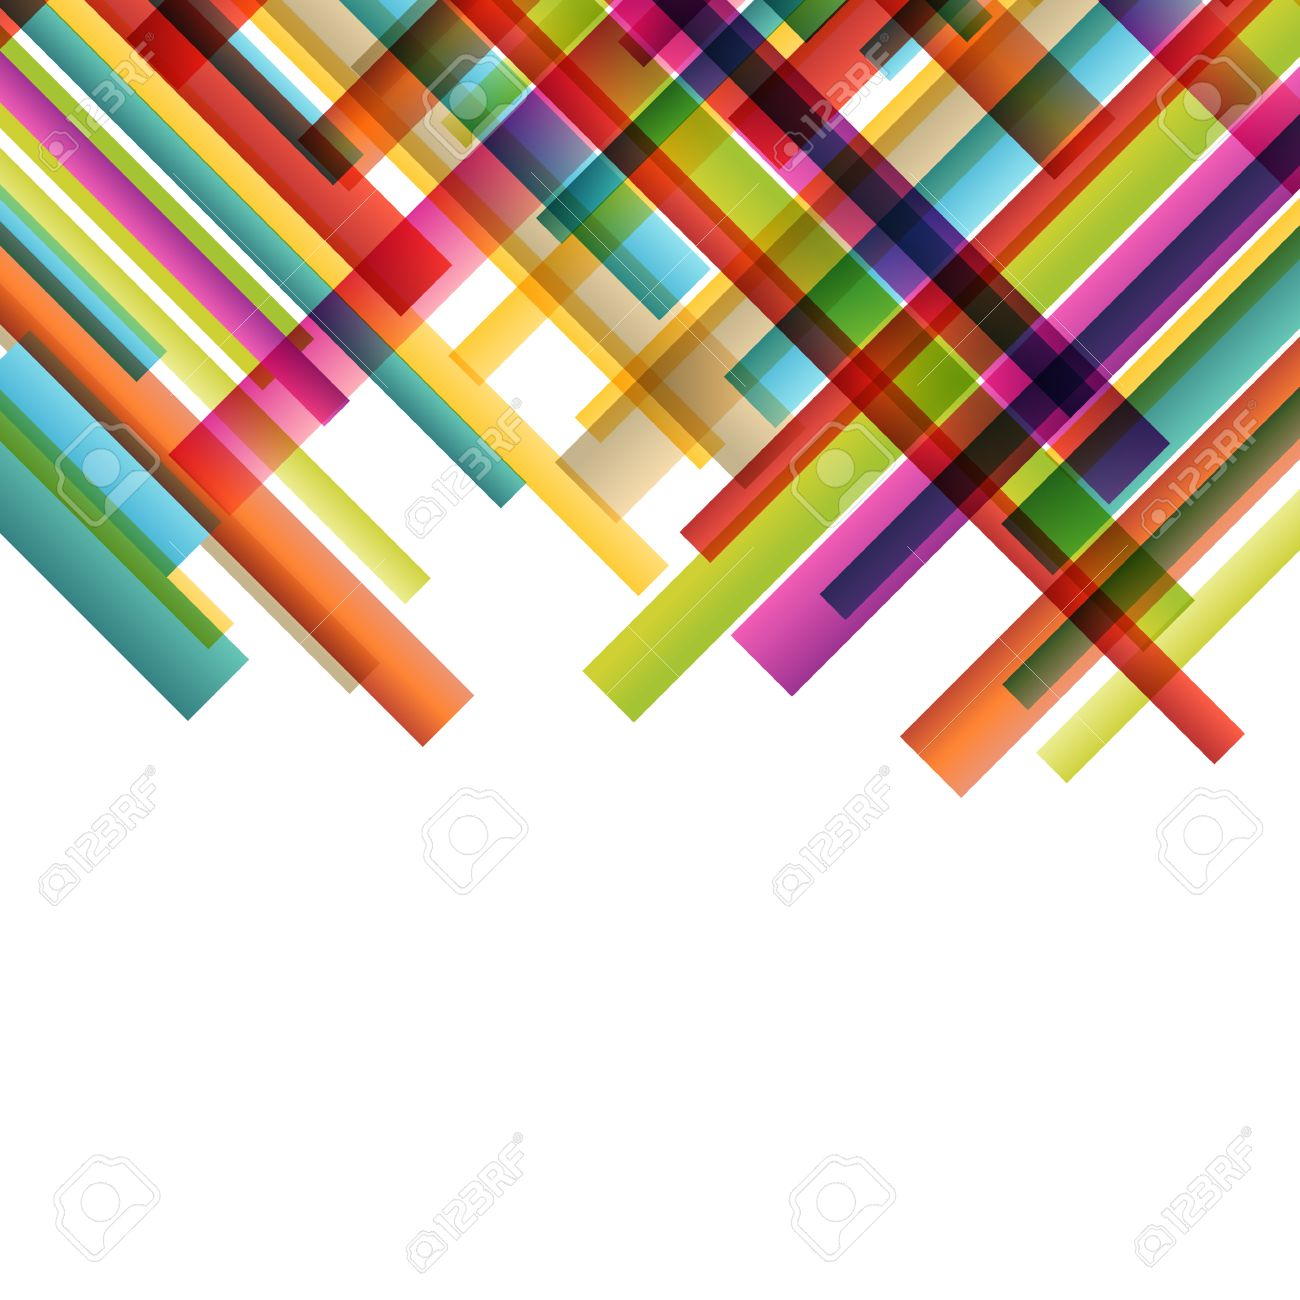 Free Vector Colored Lines Wiring Diagrams Beautyamare Eye Makeup Diagram Parts Of The For Color Colorful Mosaic Abstract Illustration Background Rh 123rf Com Lime